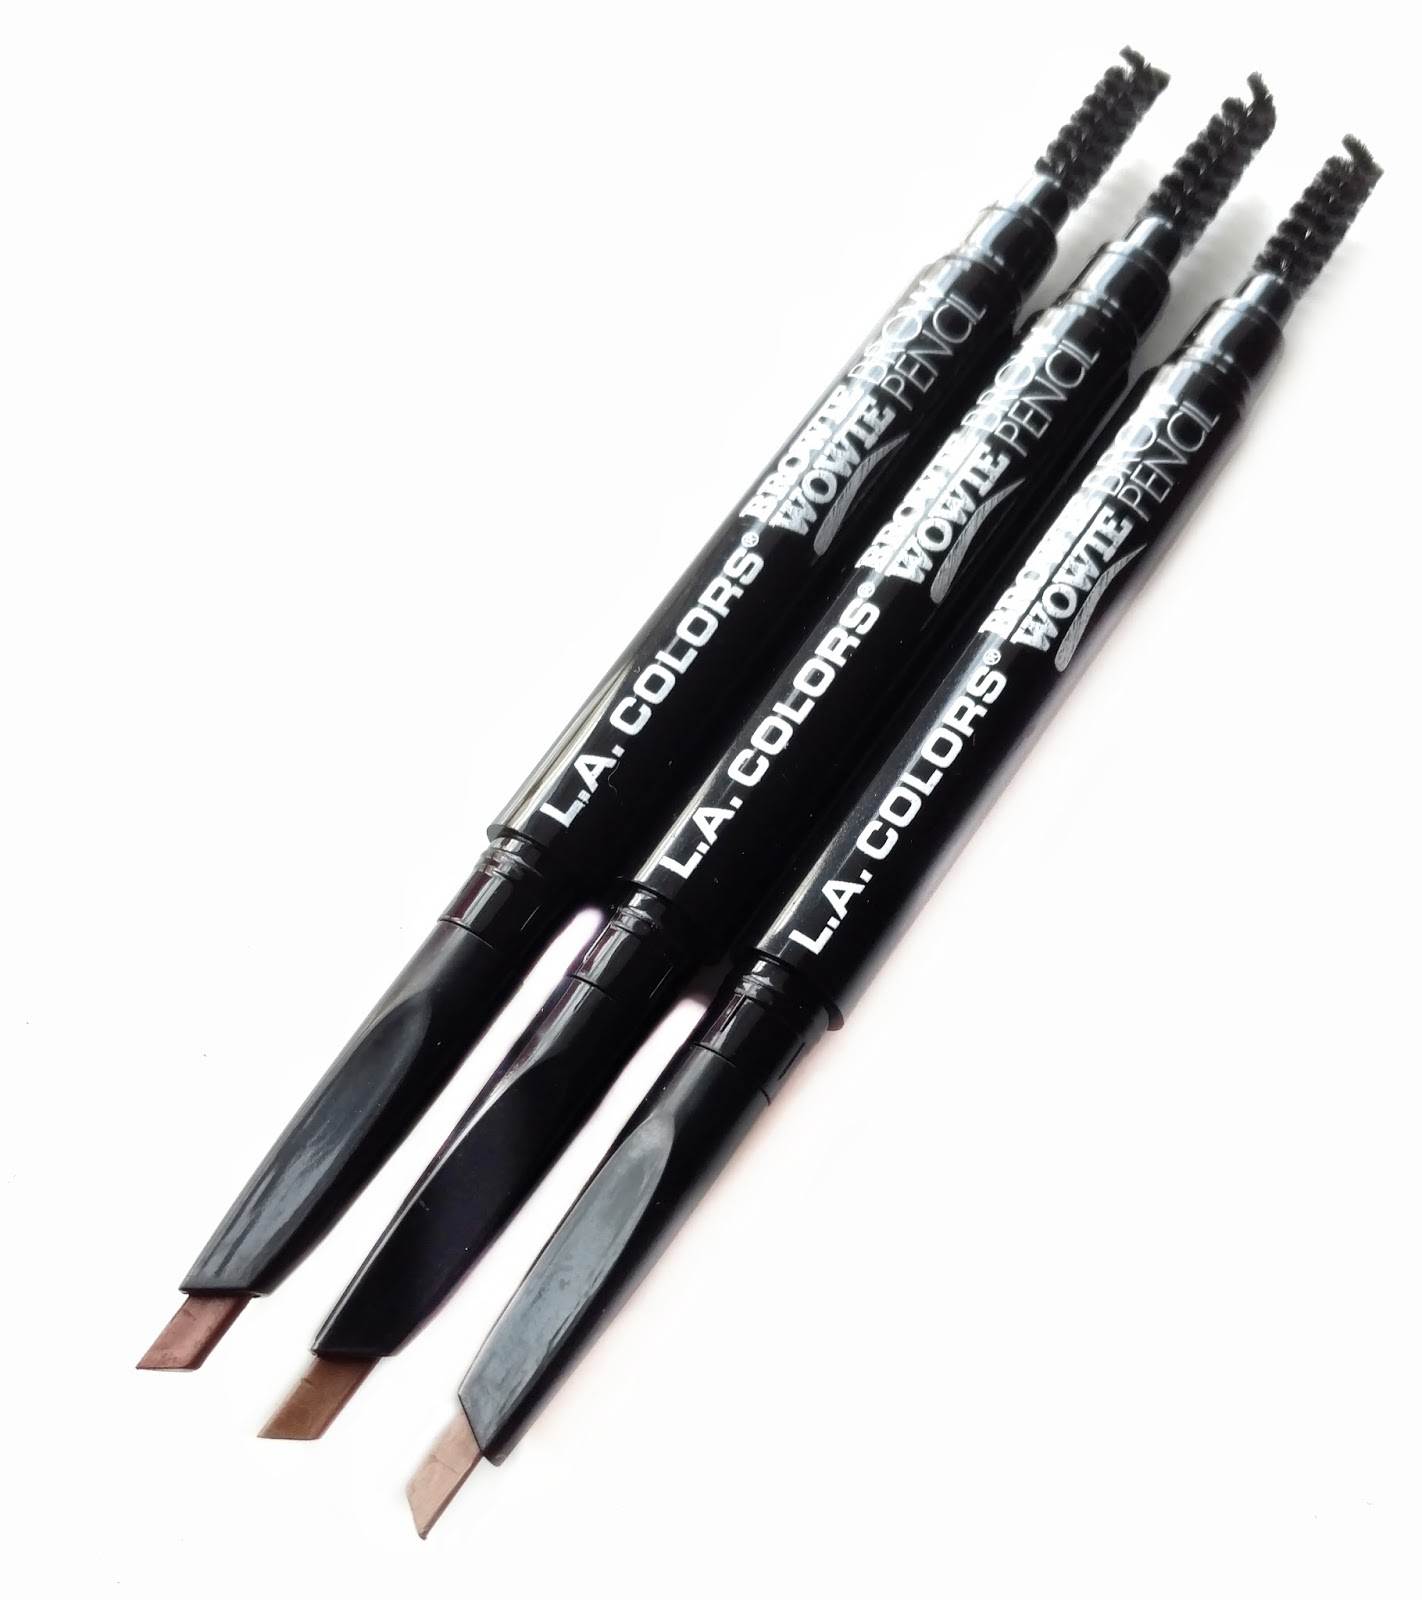 L A Colors Browie Wowie Brow Pencil Review Beauddiction